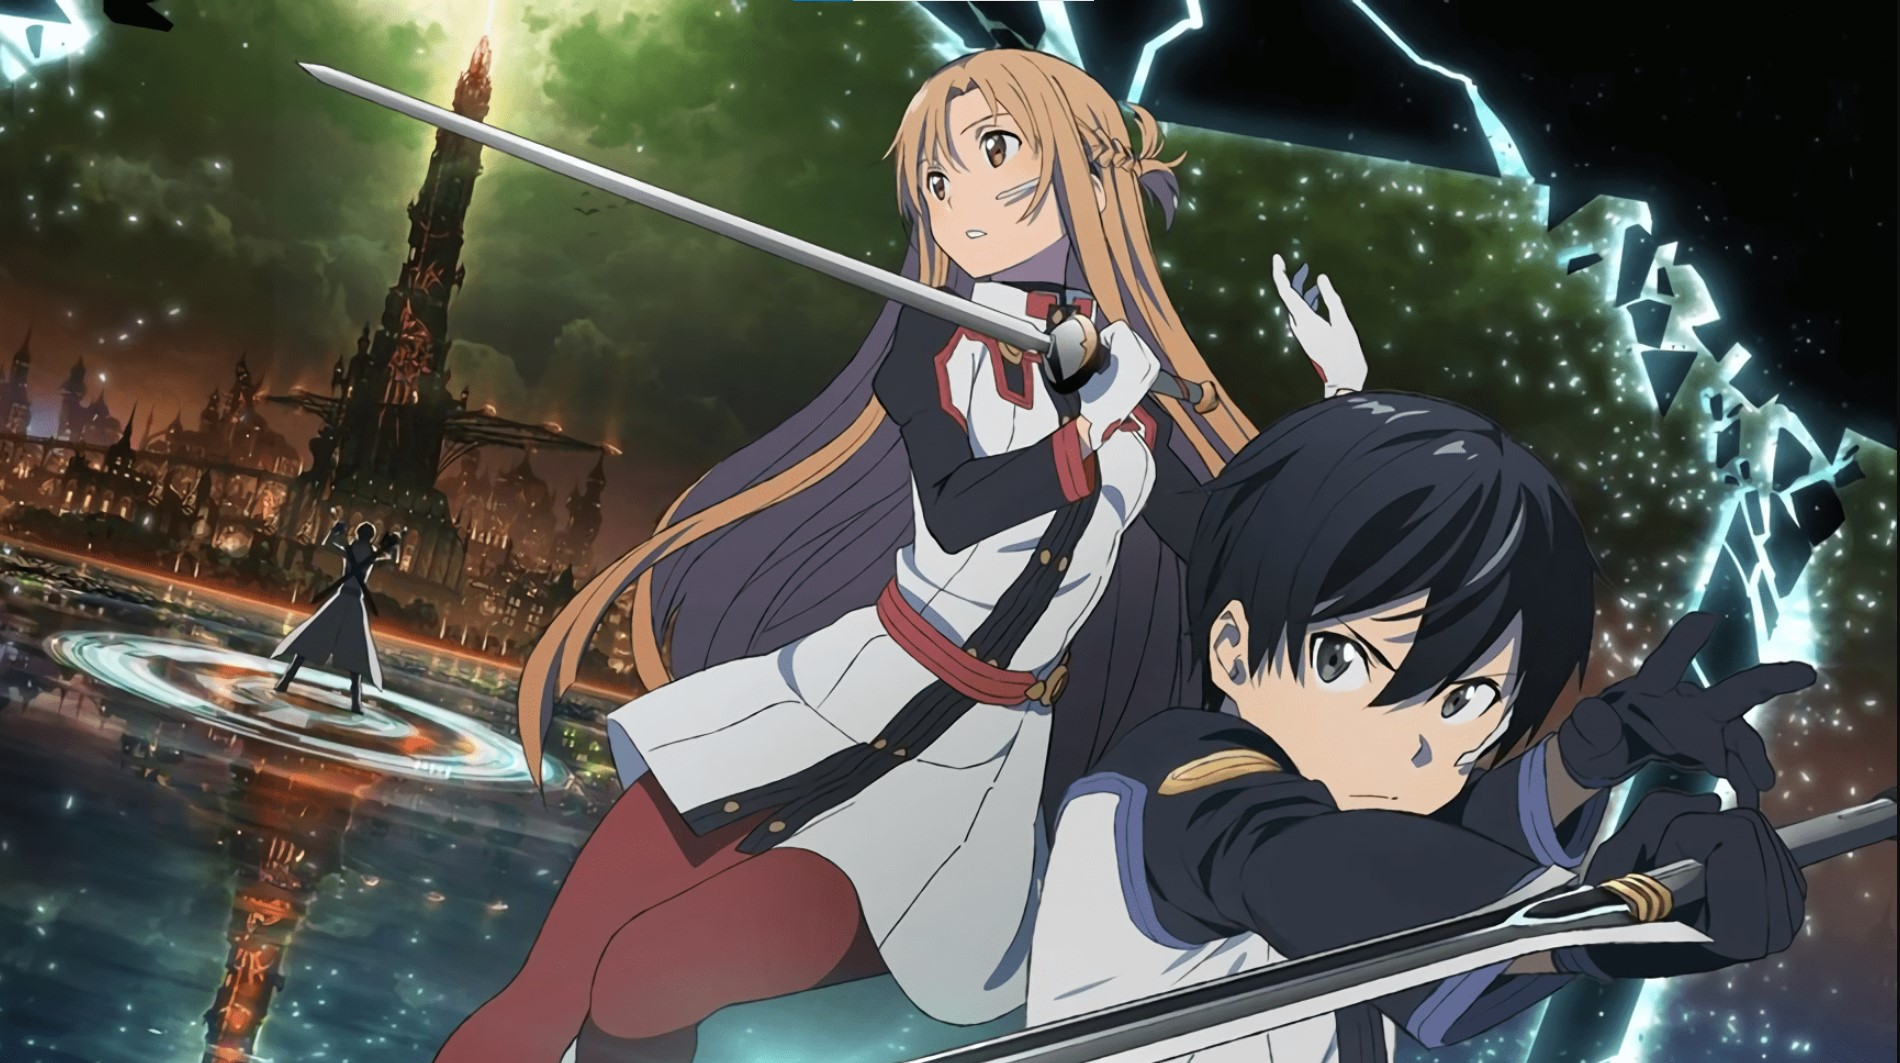 Sword Art Online: Ordinal Scale - sword art online watch order guide